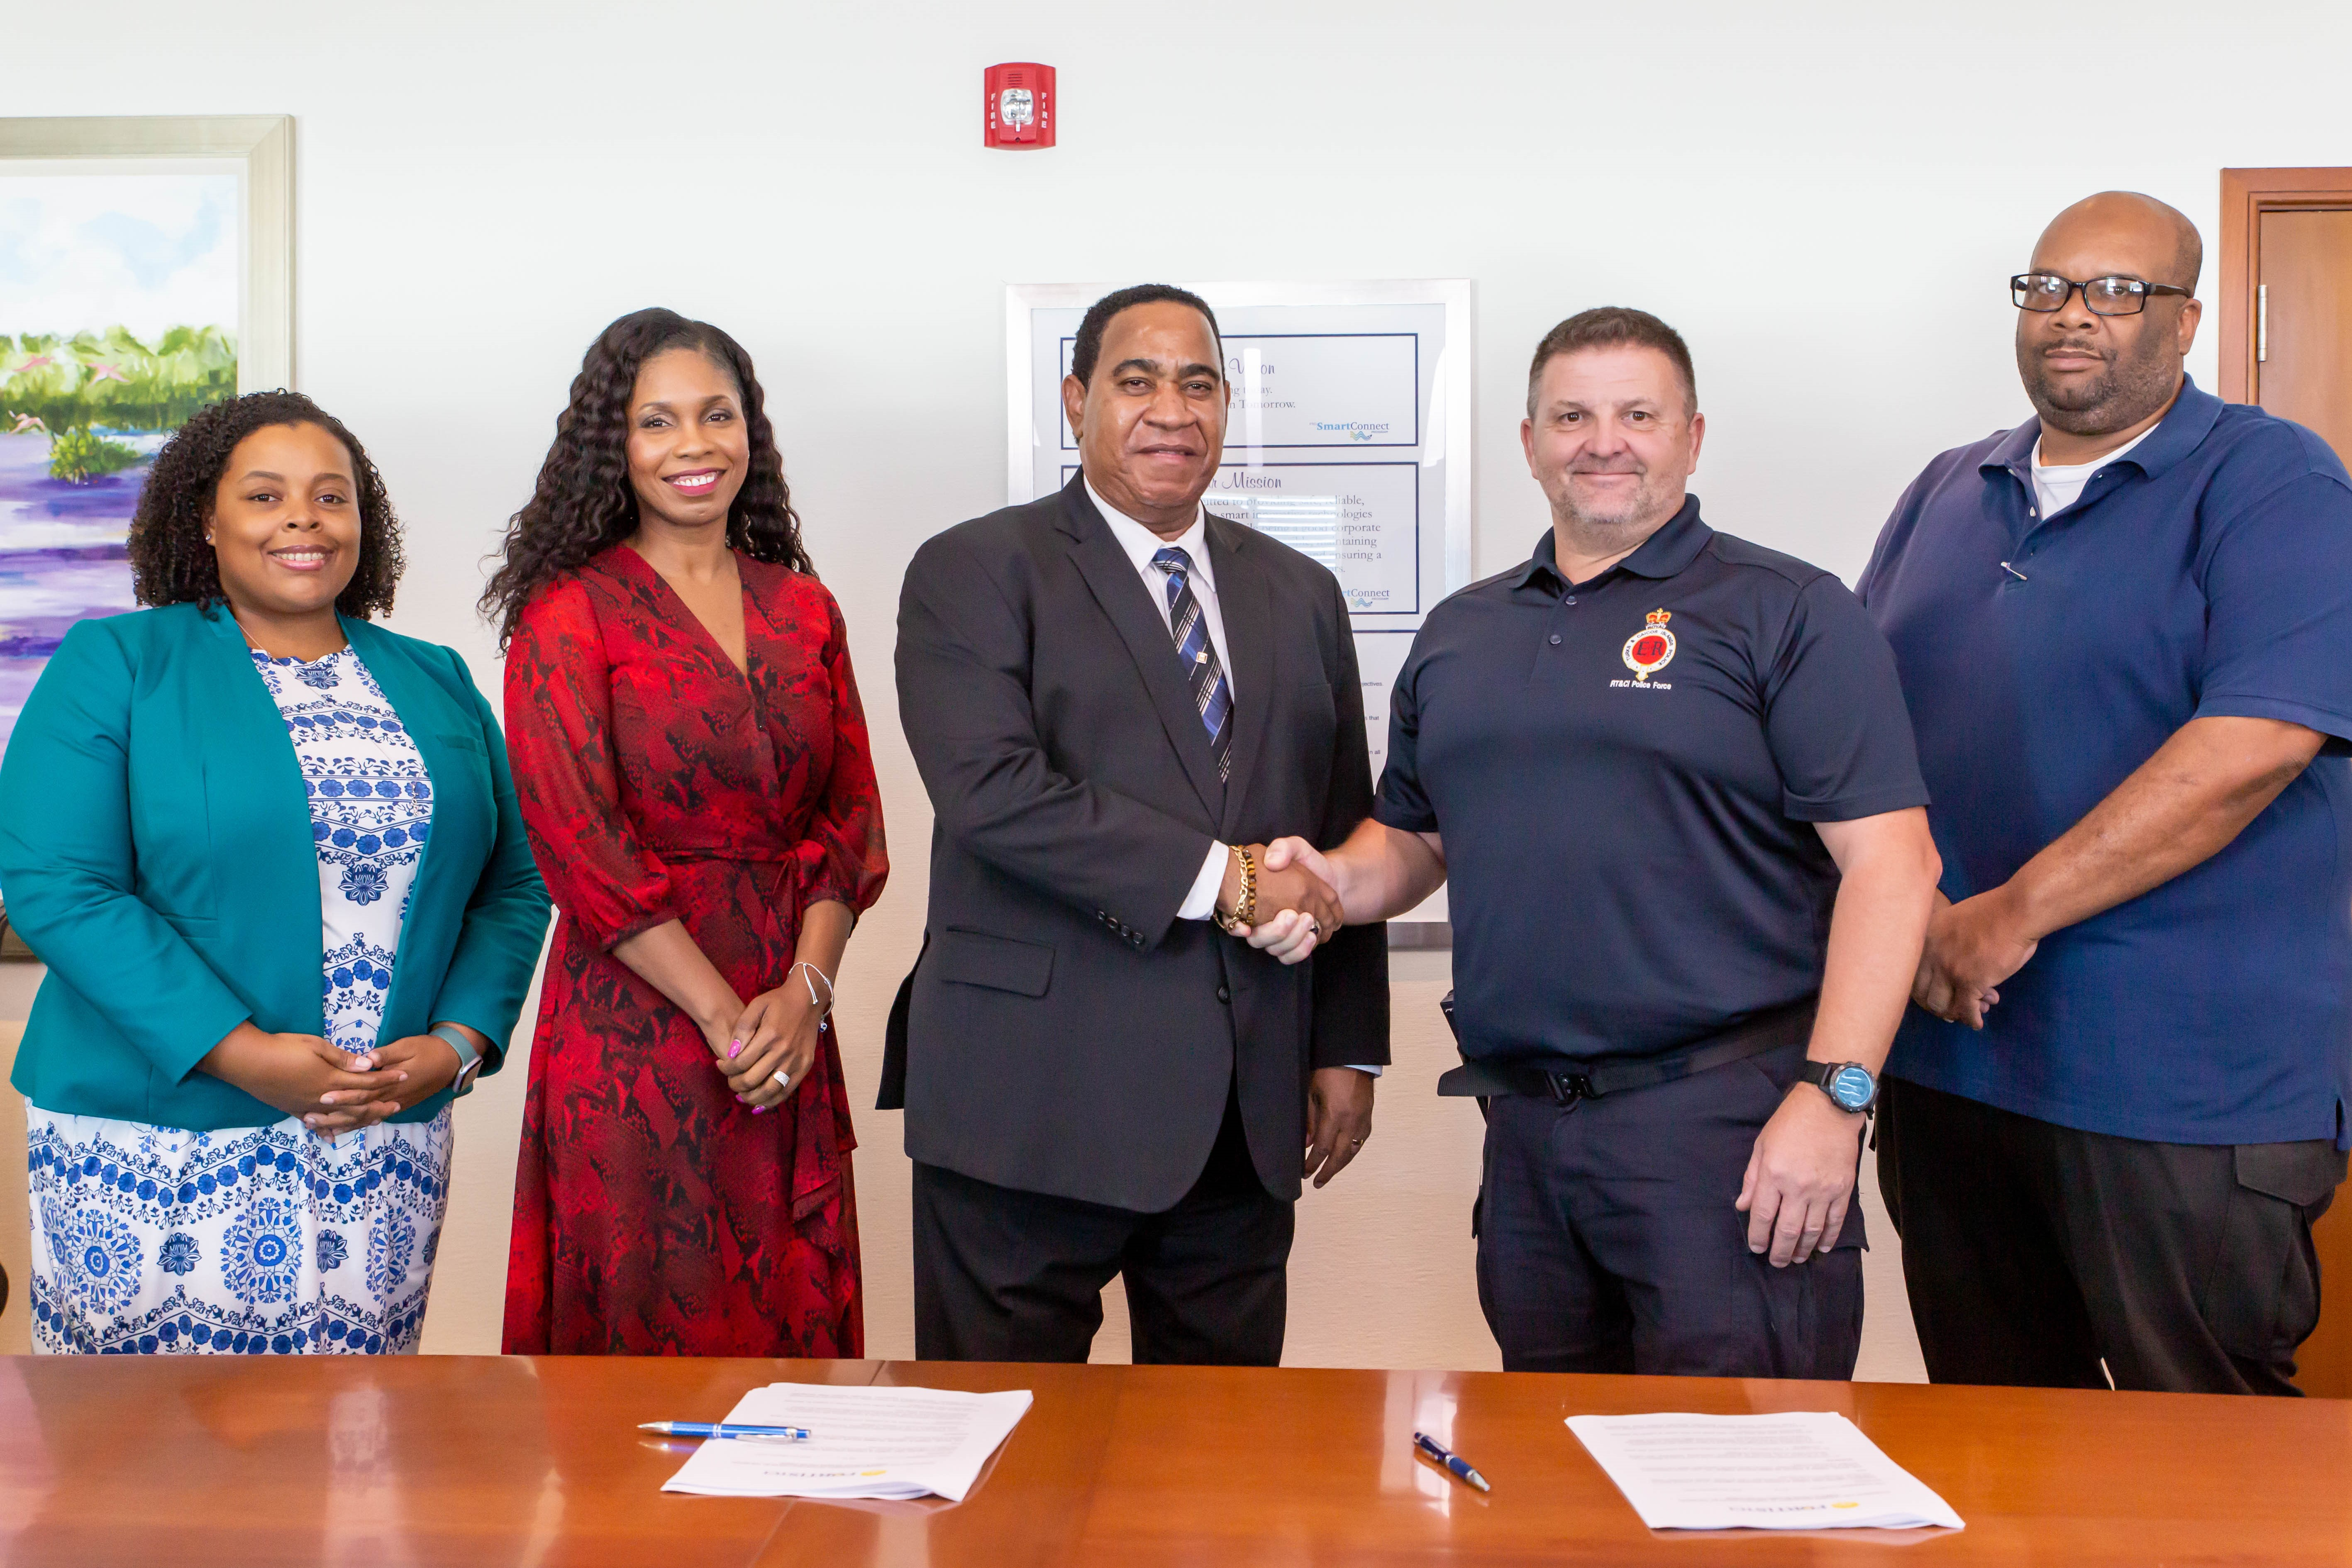 FortisTCI And The Royal Turks And Caicos Islands Police Continue Partnership For More CCTV Cameras